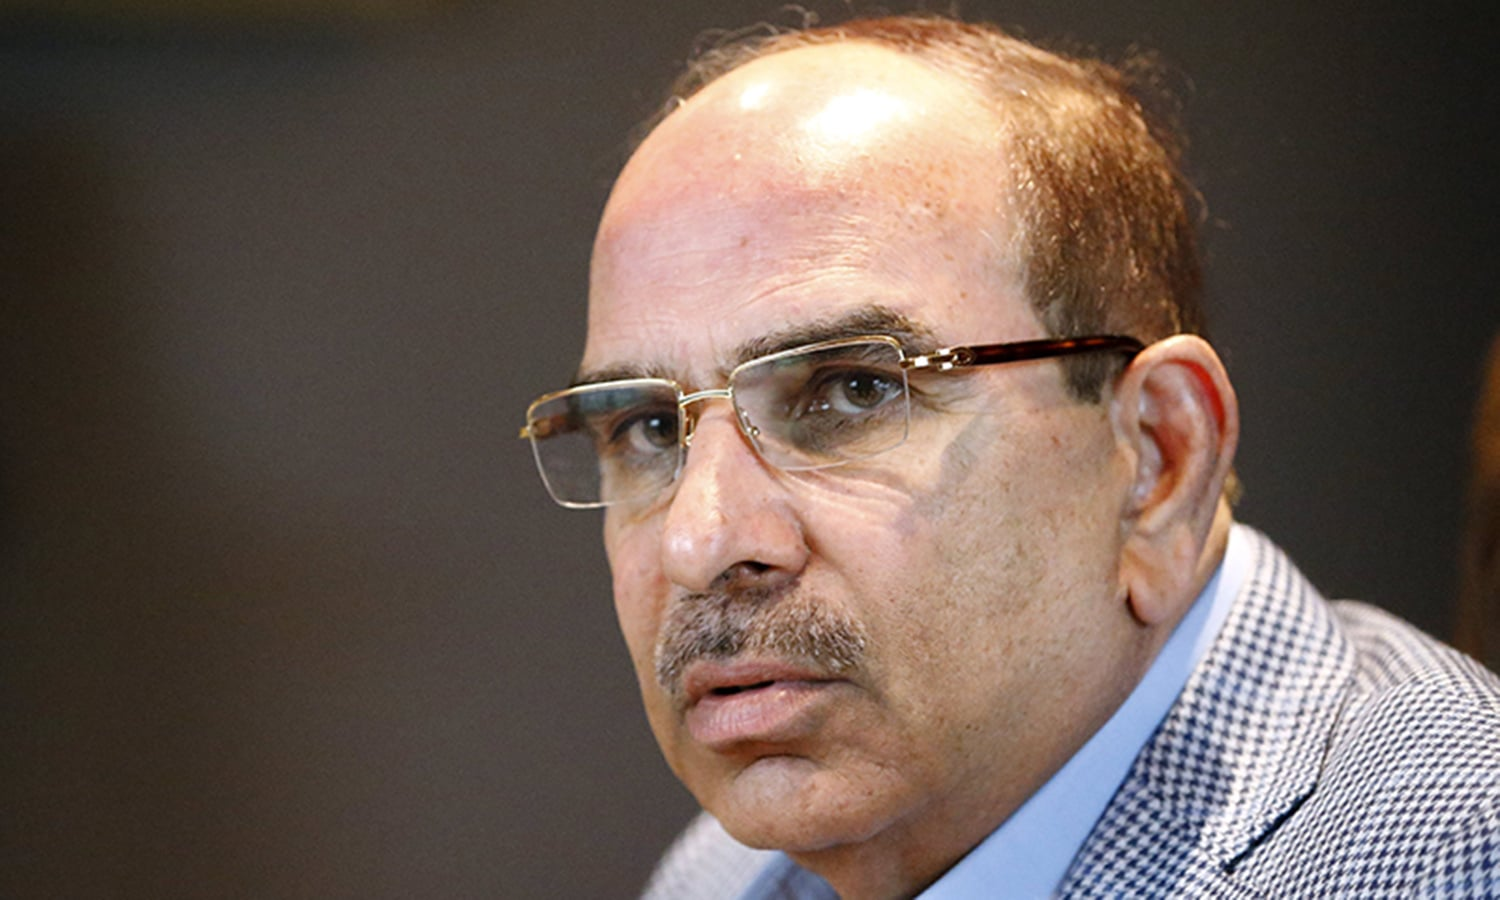 Malik Riaz on bribes, blackmail and launching media empire